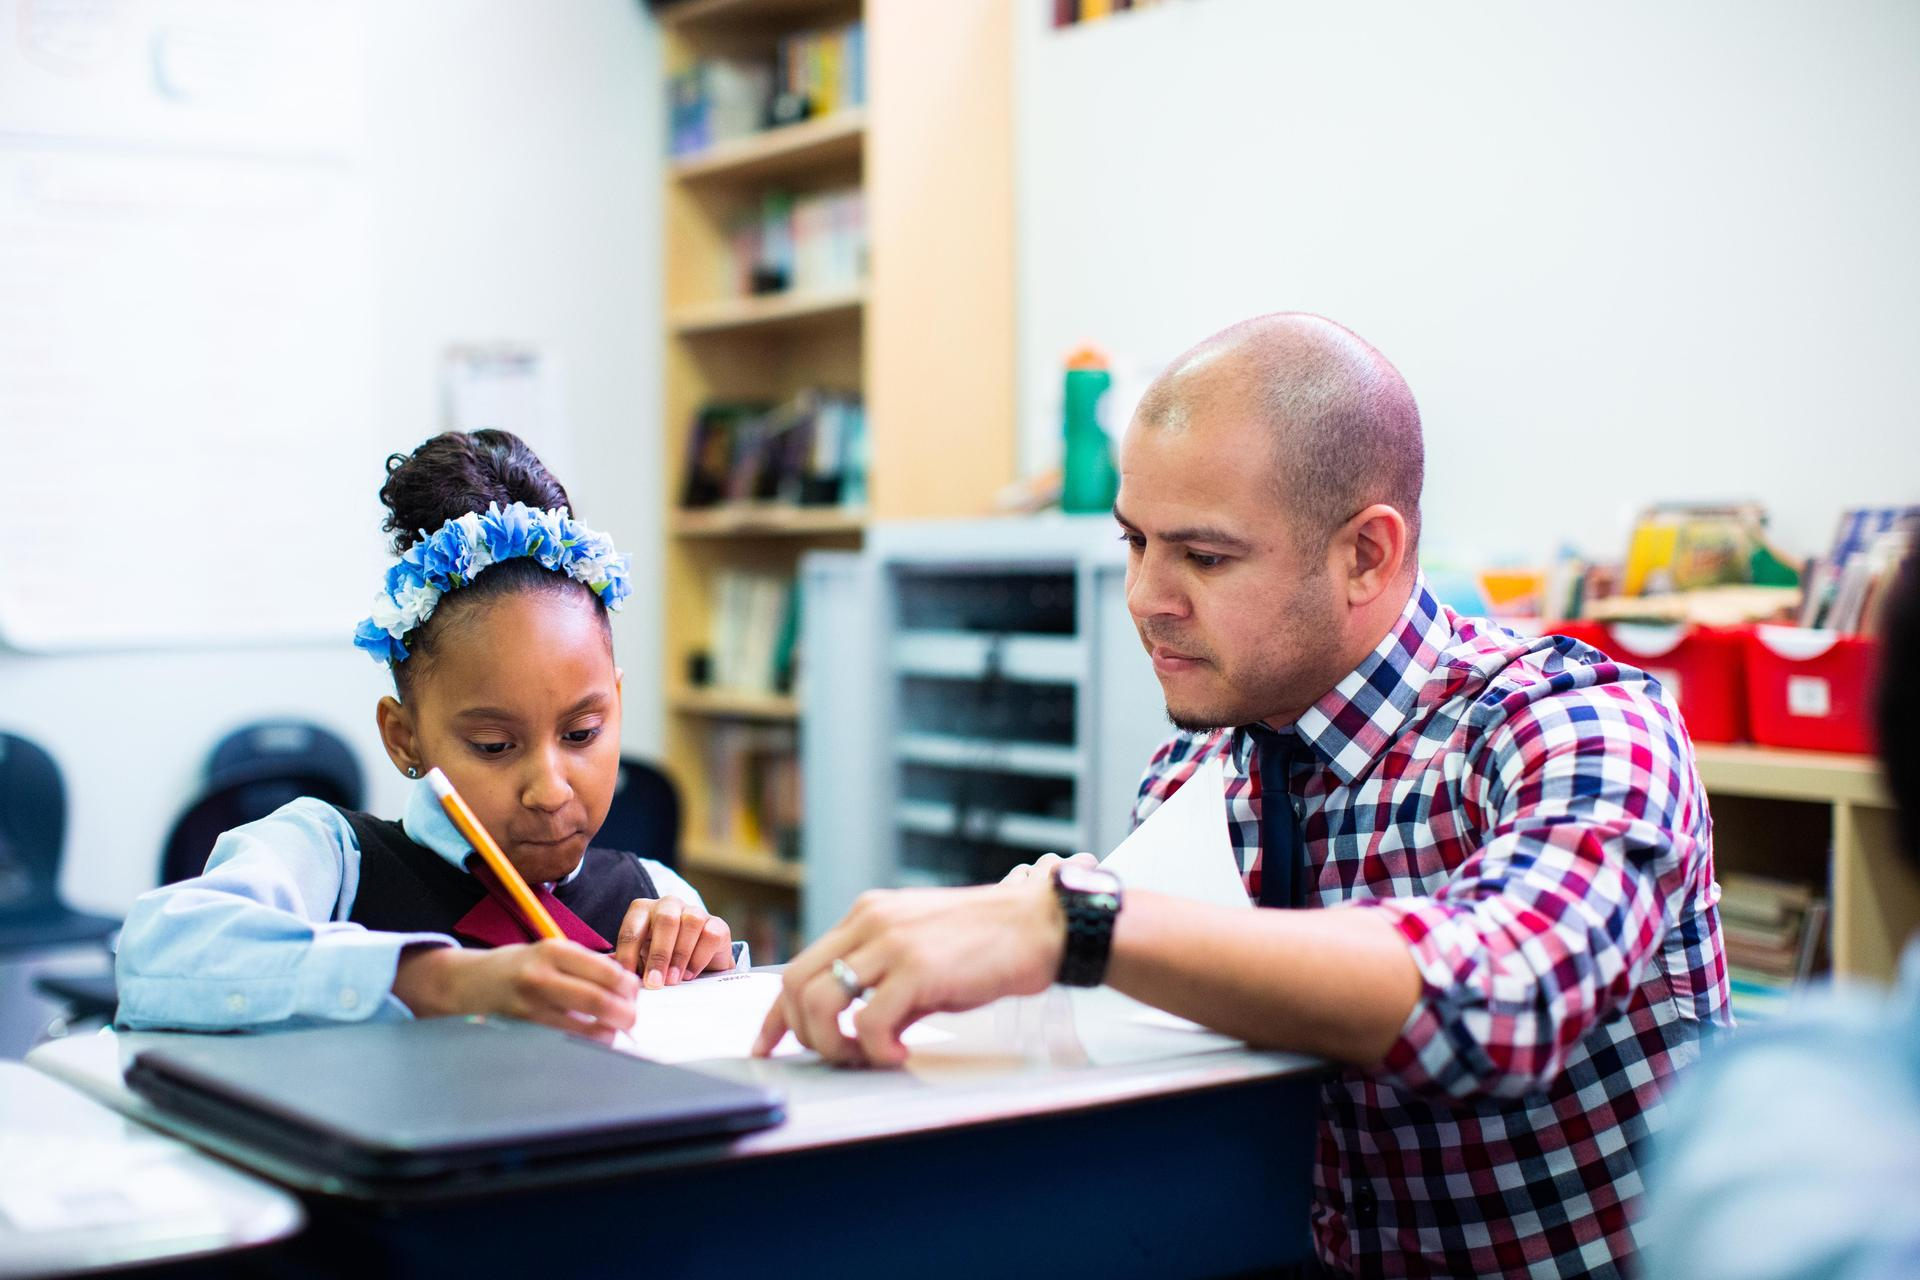 teacher kneeling next to student who is writing